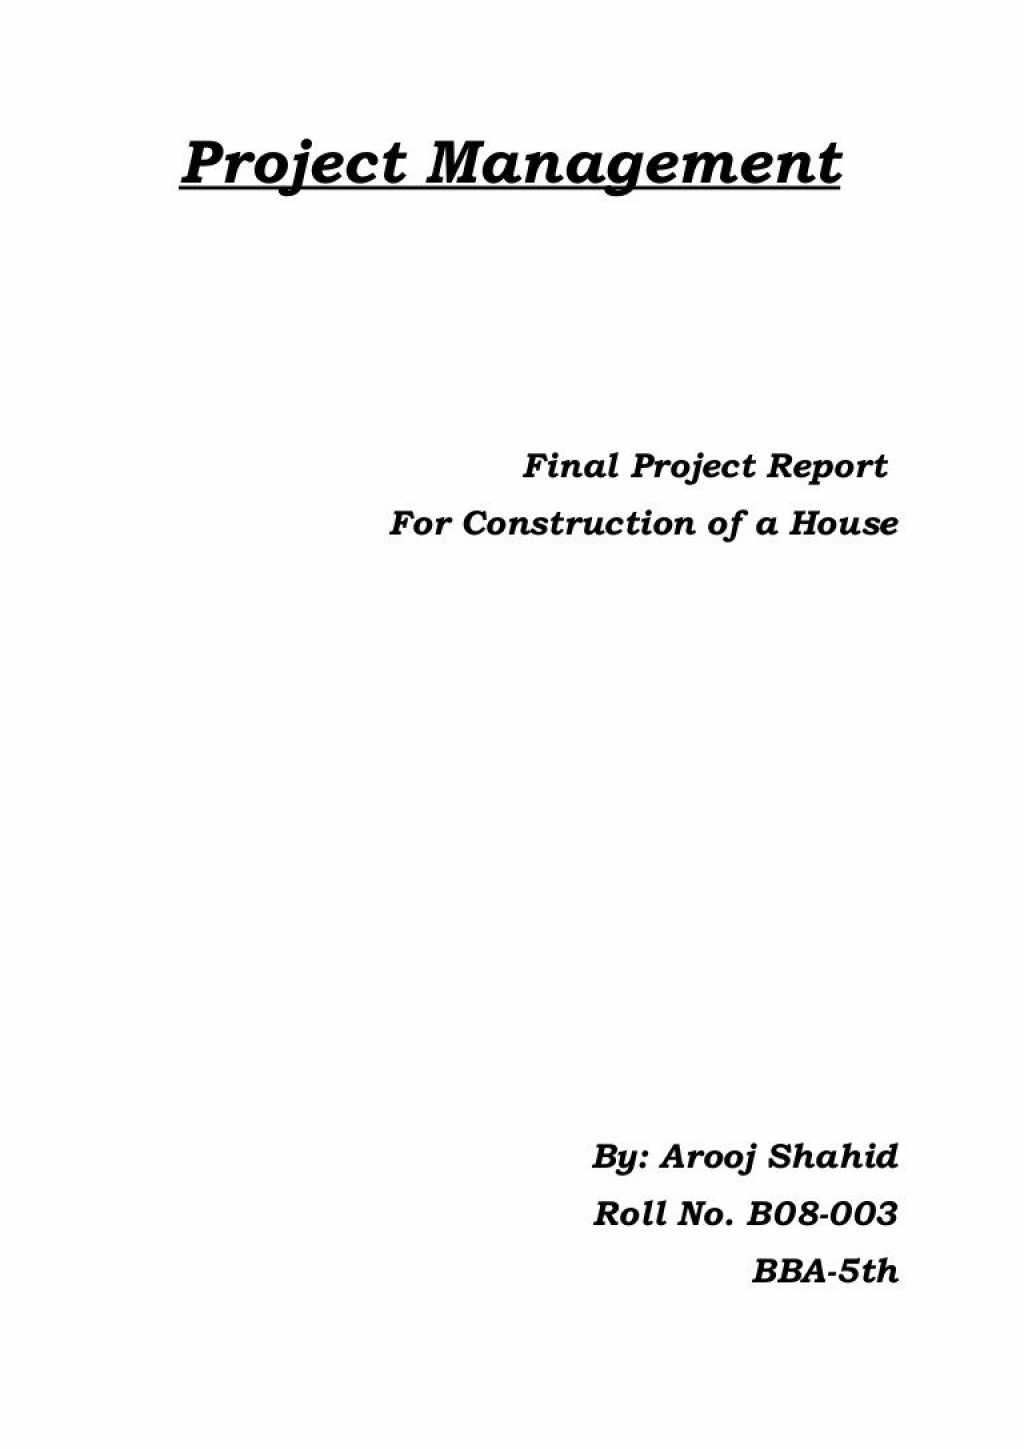 004 Sensational Project Management Report Format Highest Quality  Template Word Free Example PdfLarge